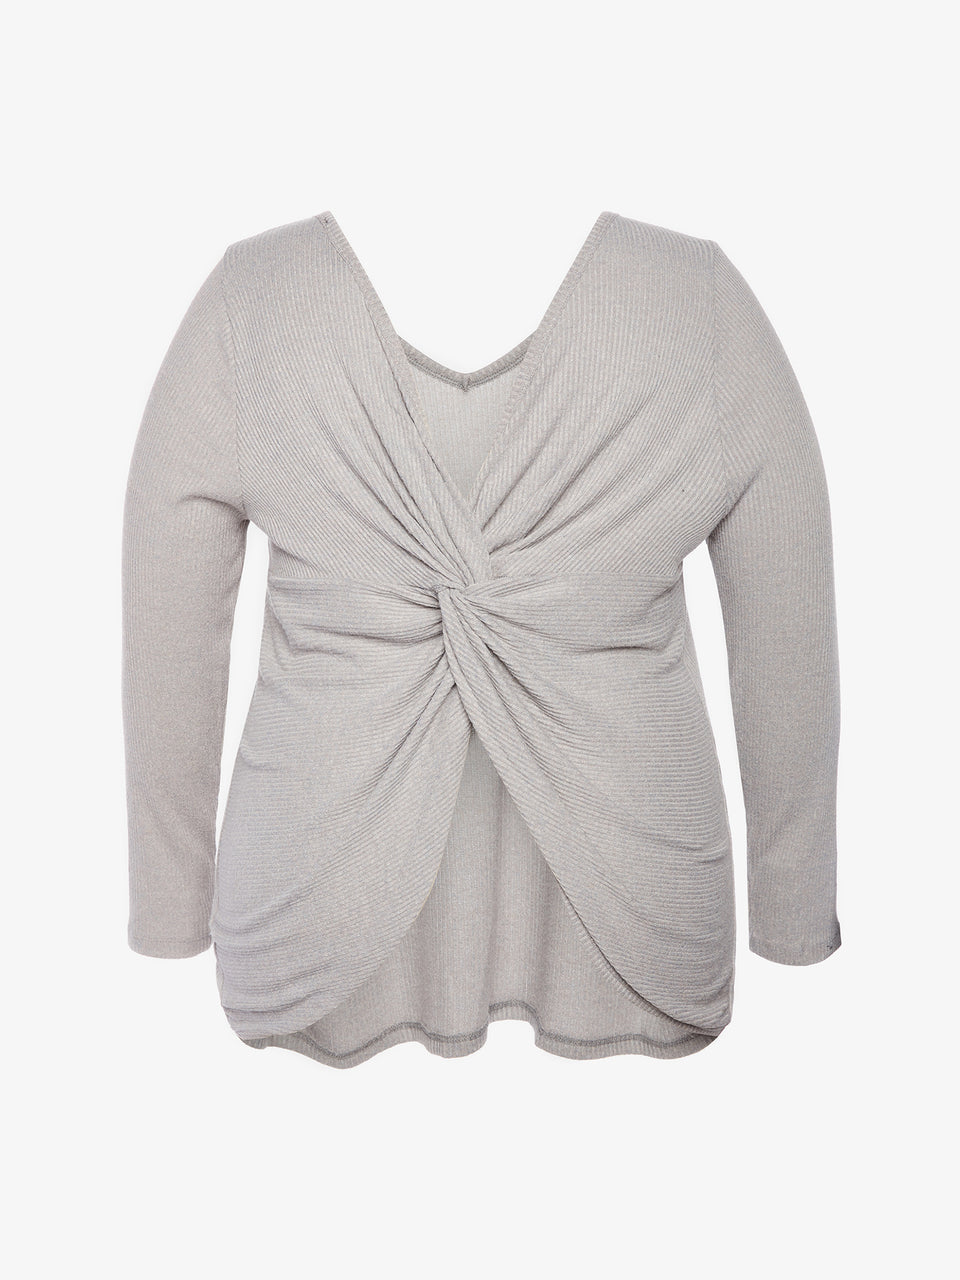 soncy_knotty_or_nice_long_sleeve_top_grey